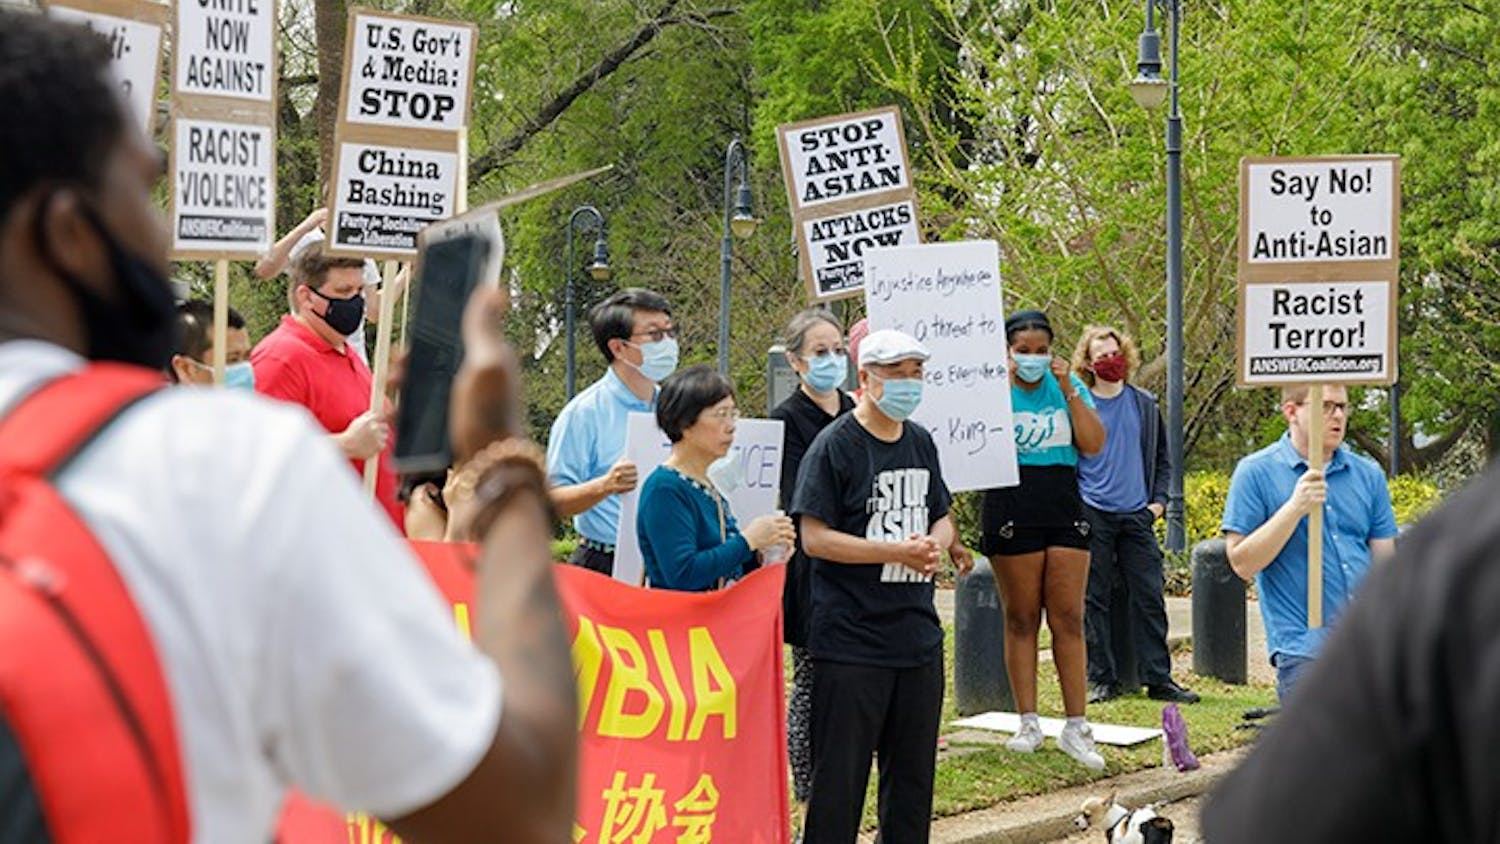 A group holds signs in protest of Asian hate that is happening within Asian communities.